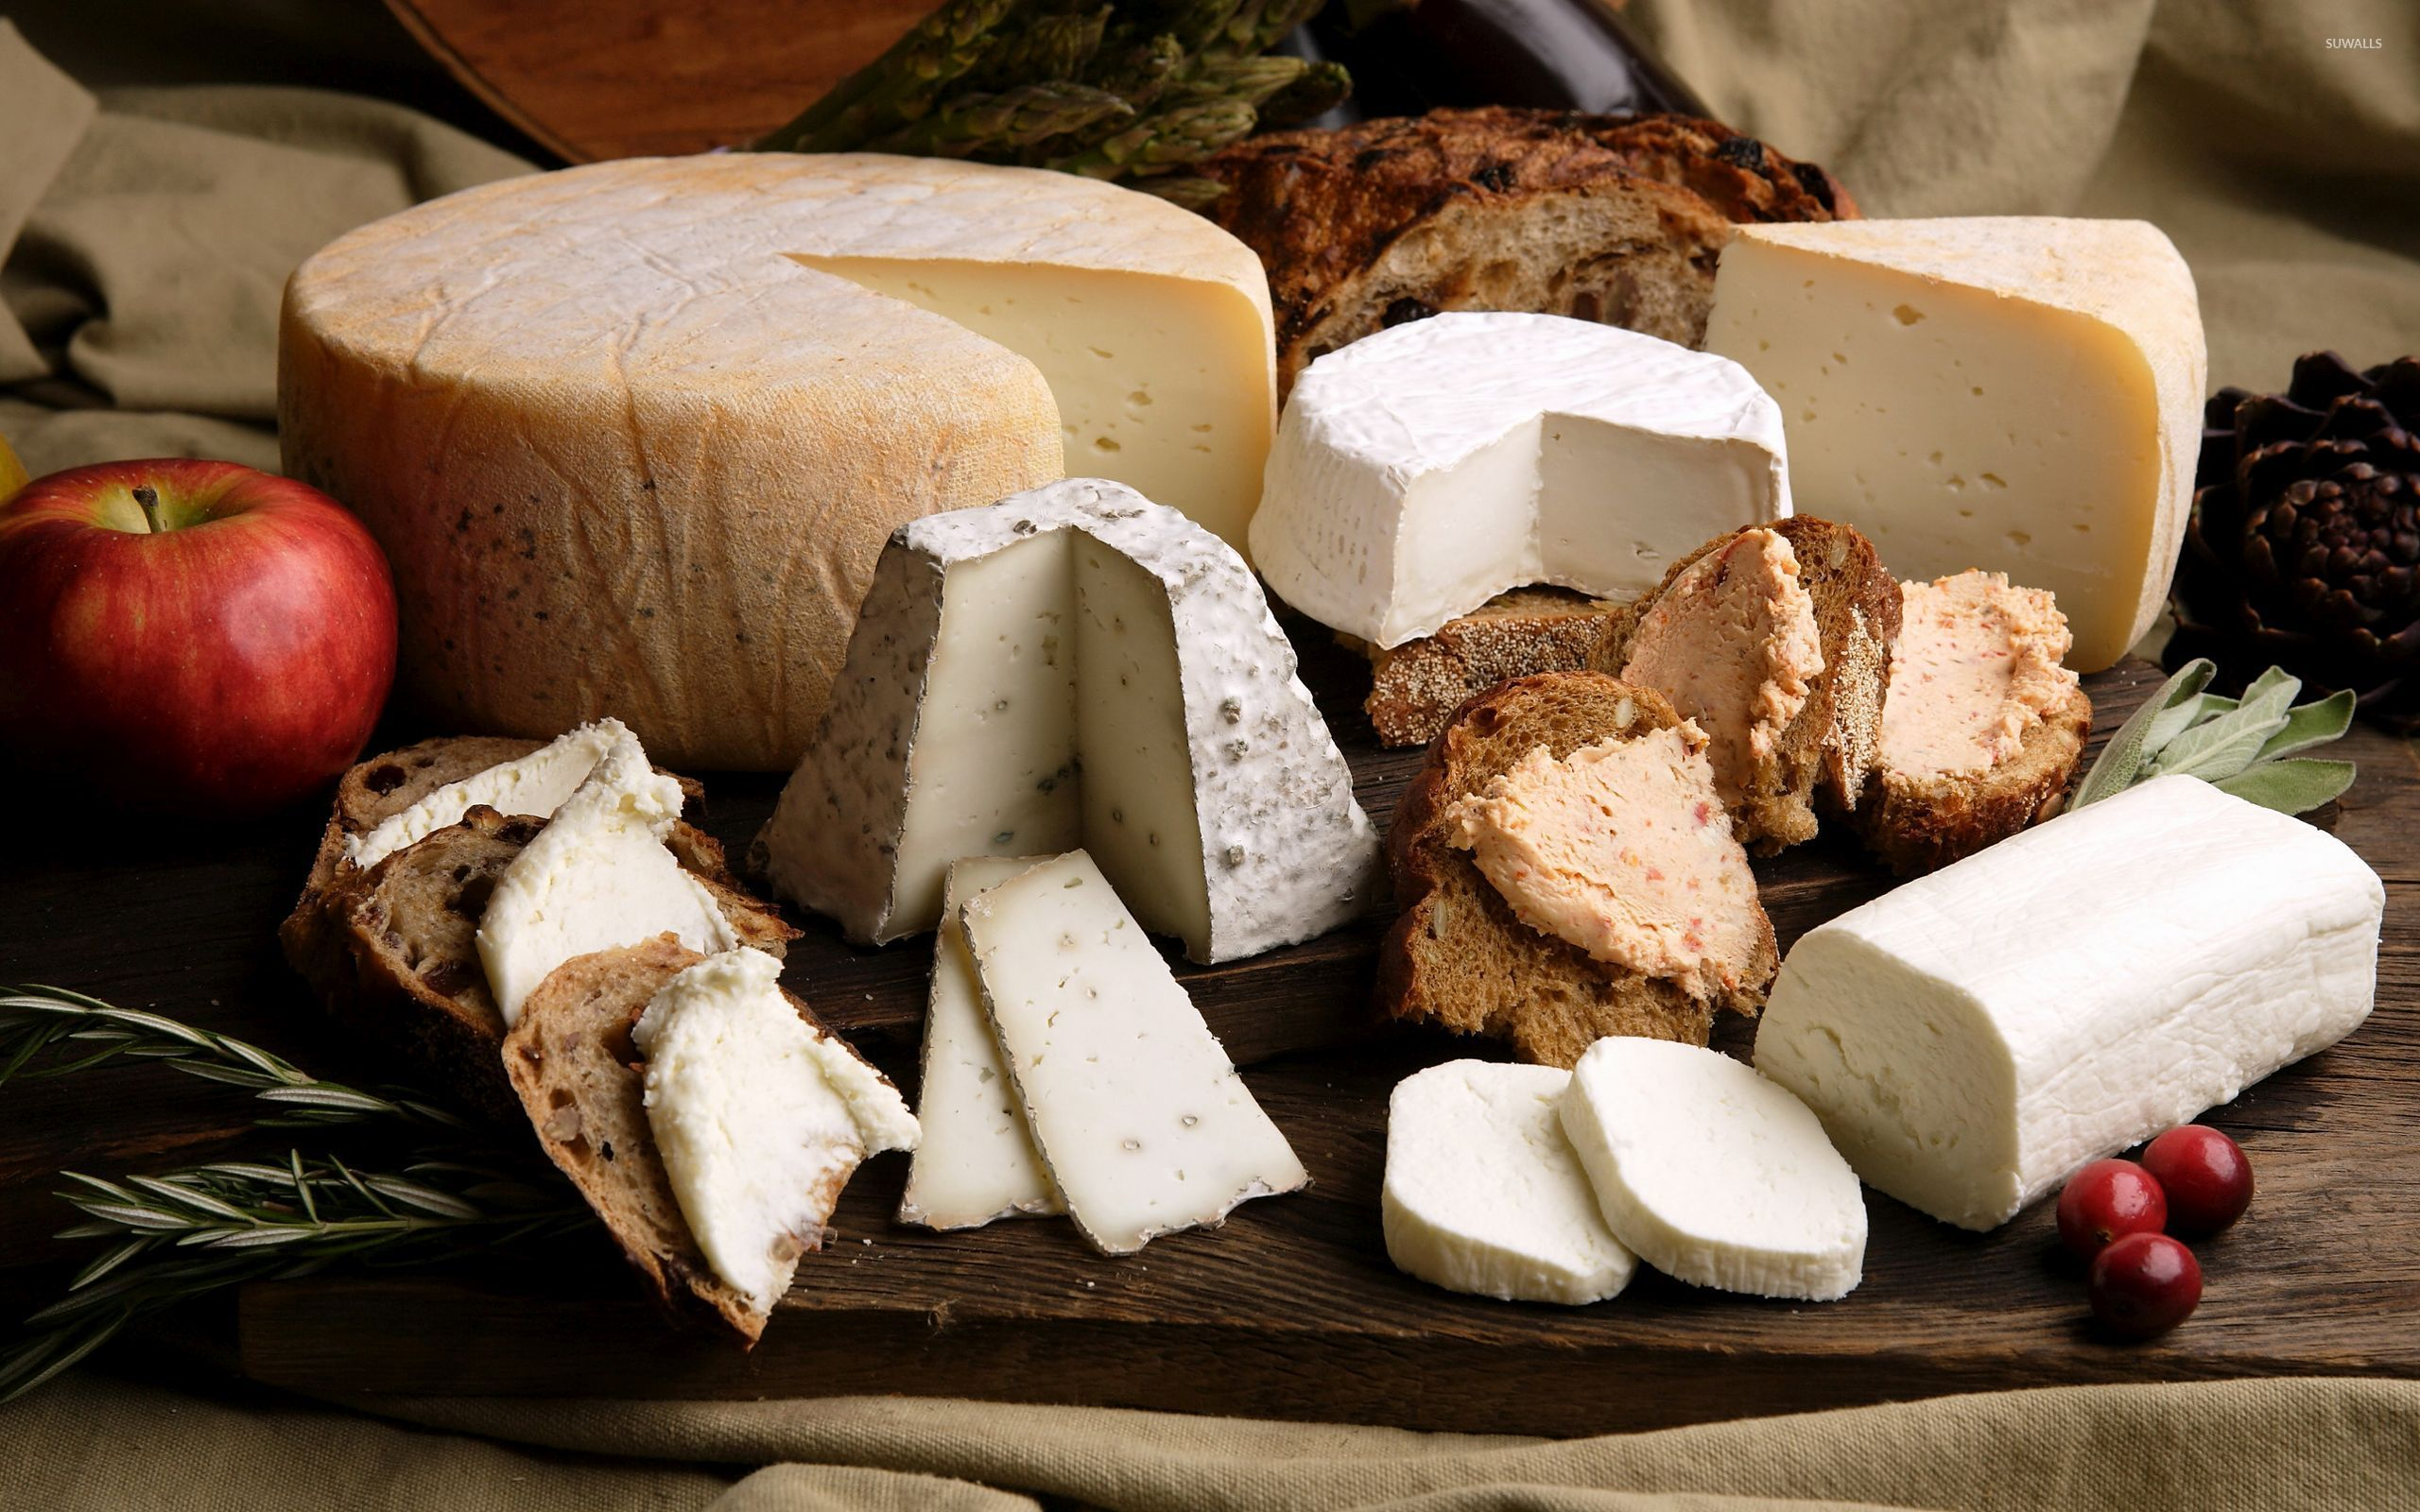 Cheese tray wallpaper   Photography wallpapers   31569 2560x1600